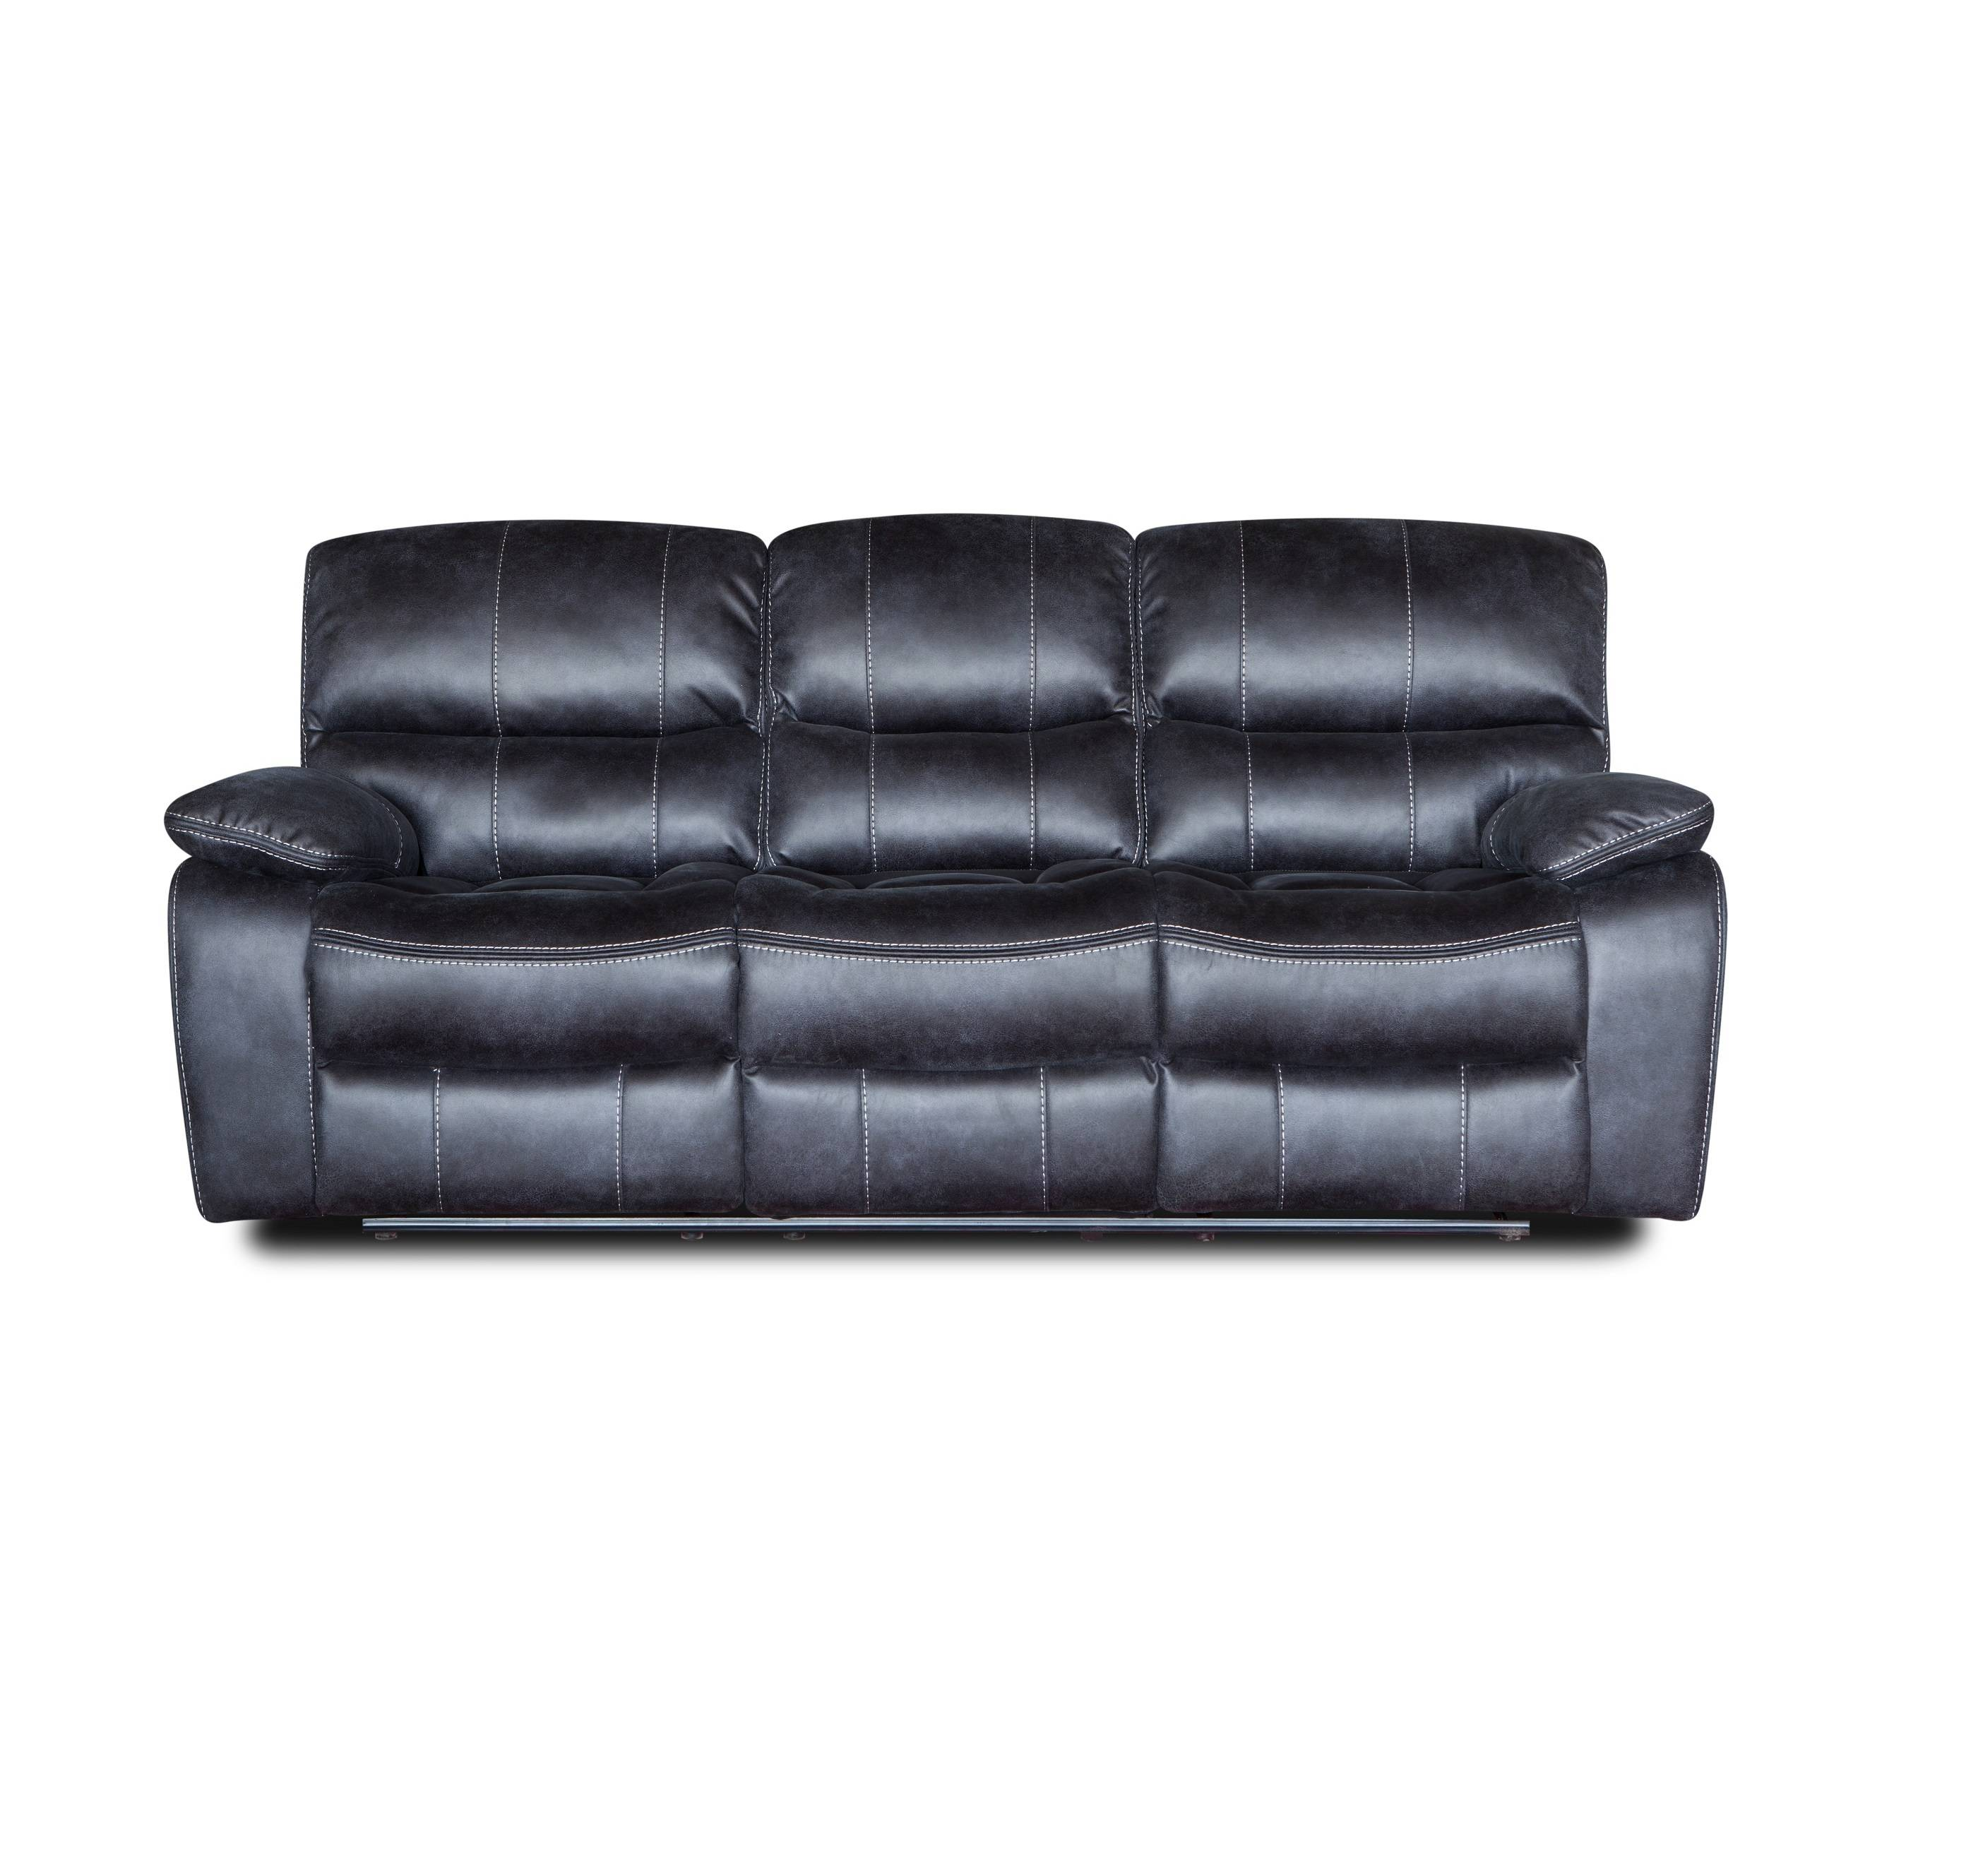 American style high quality leather recliner sofa sets for living room